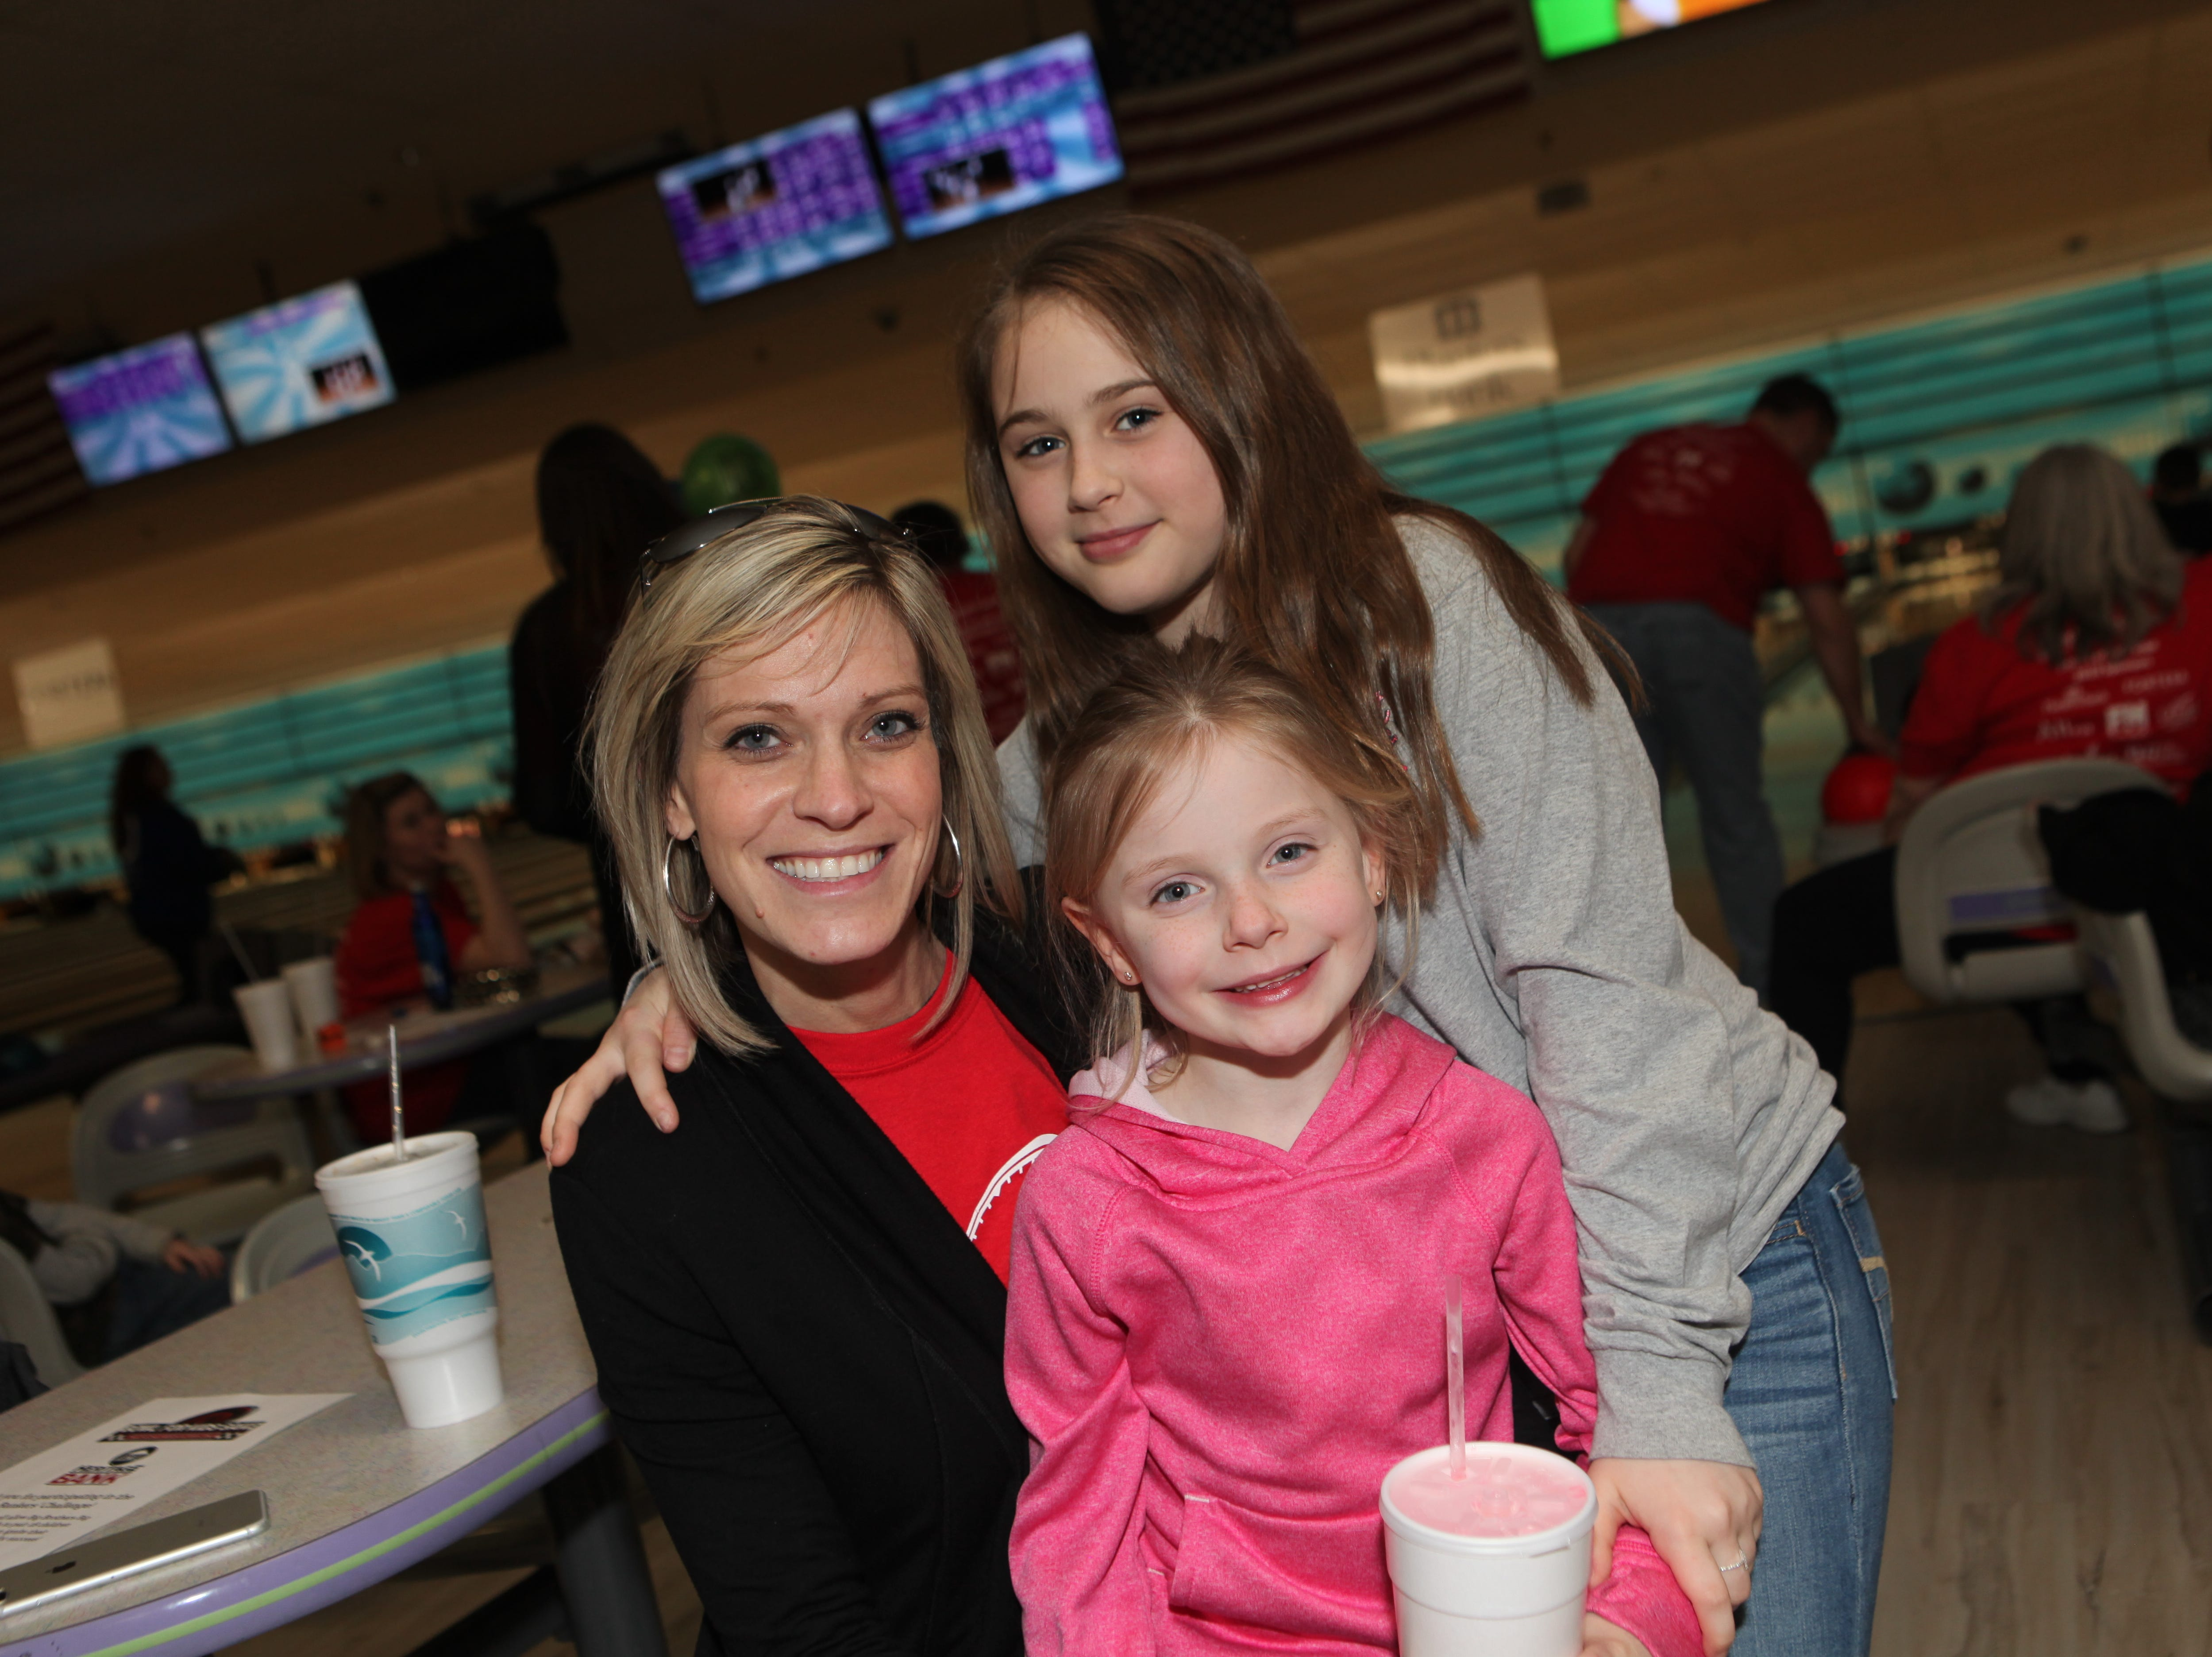 Big Brothers Big Sisters hosted its 2019 Bankers Challenge at the Pinnacle Family Entertainment Center on Tuesday, March 12, 2019.